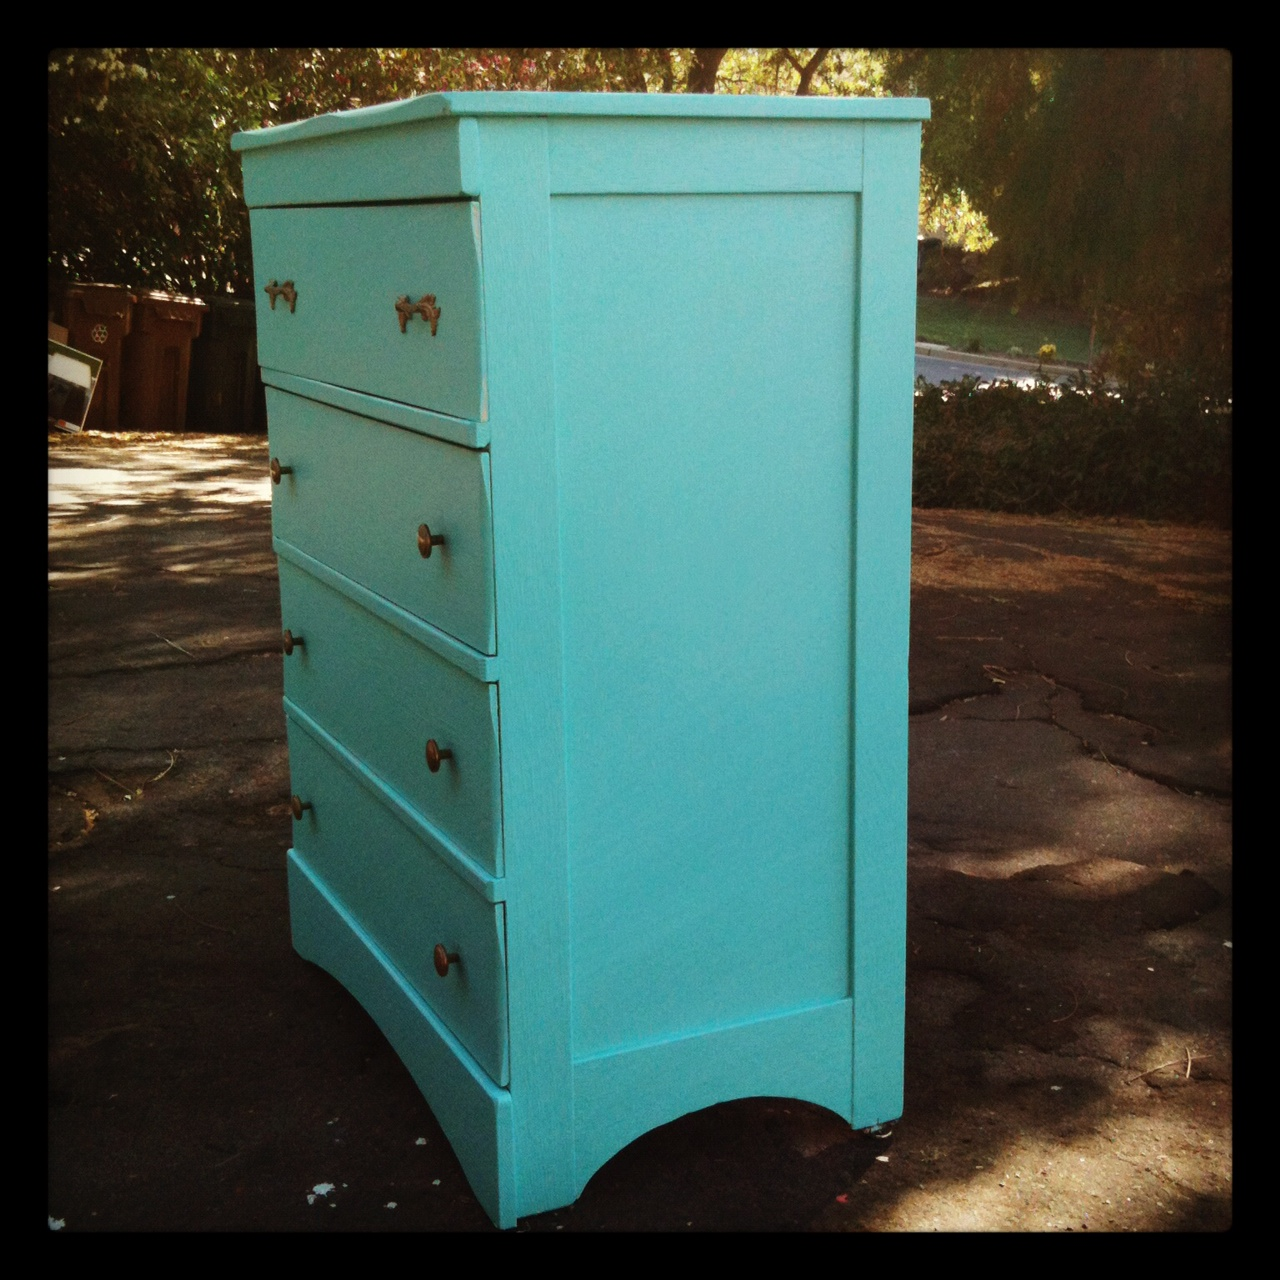 Bright Turquoise Gold Petite Tall Boy Dresser For A Smaller Space Or A